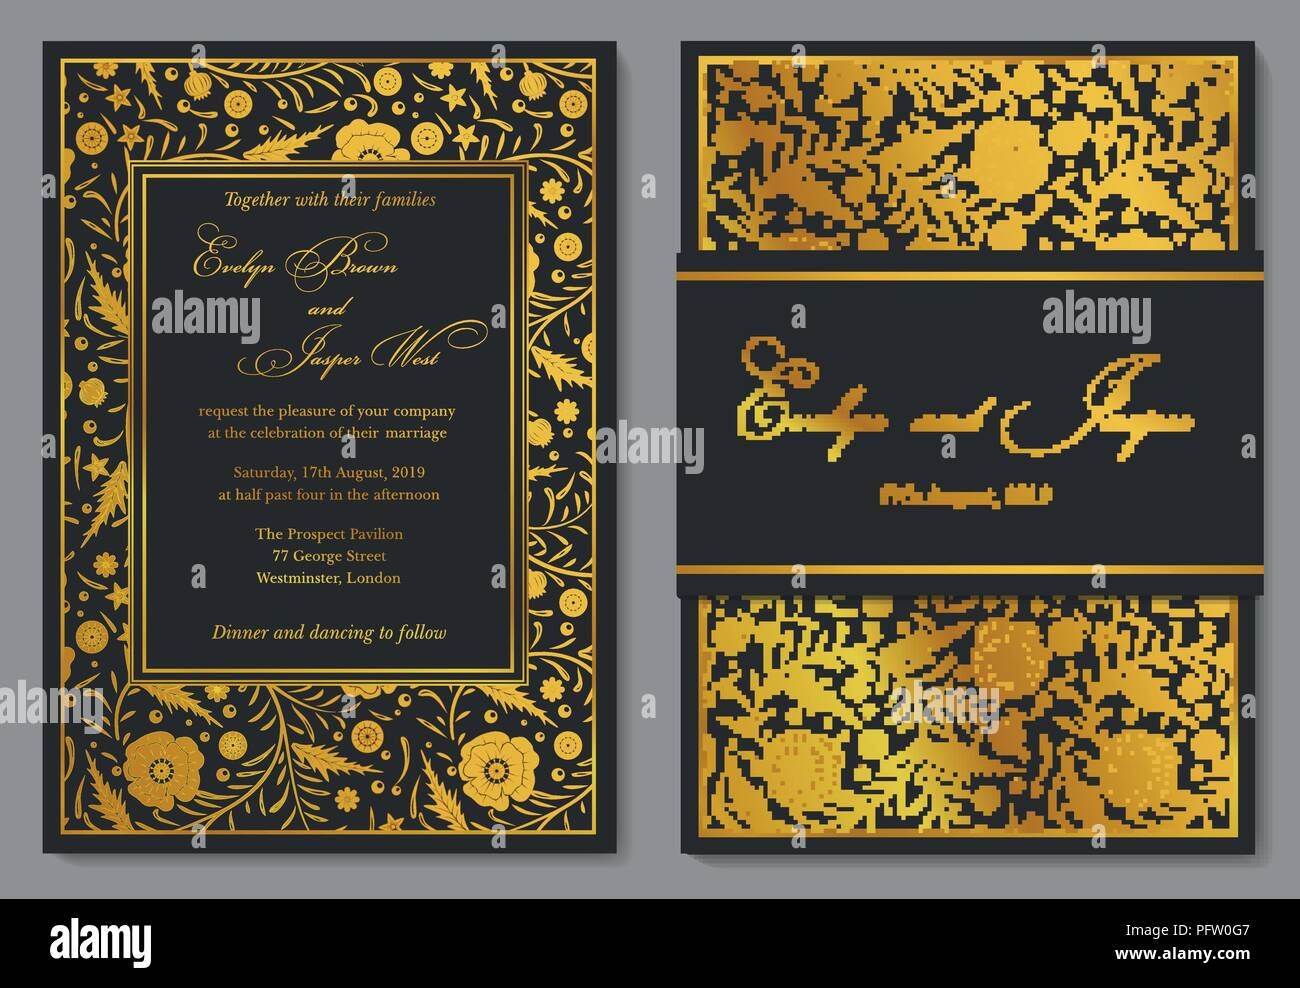 Wedding Invitation Floral Invite Card Design With Golden Foil